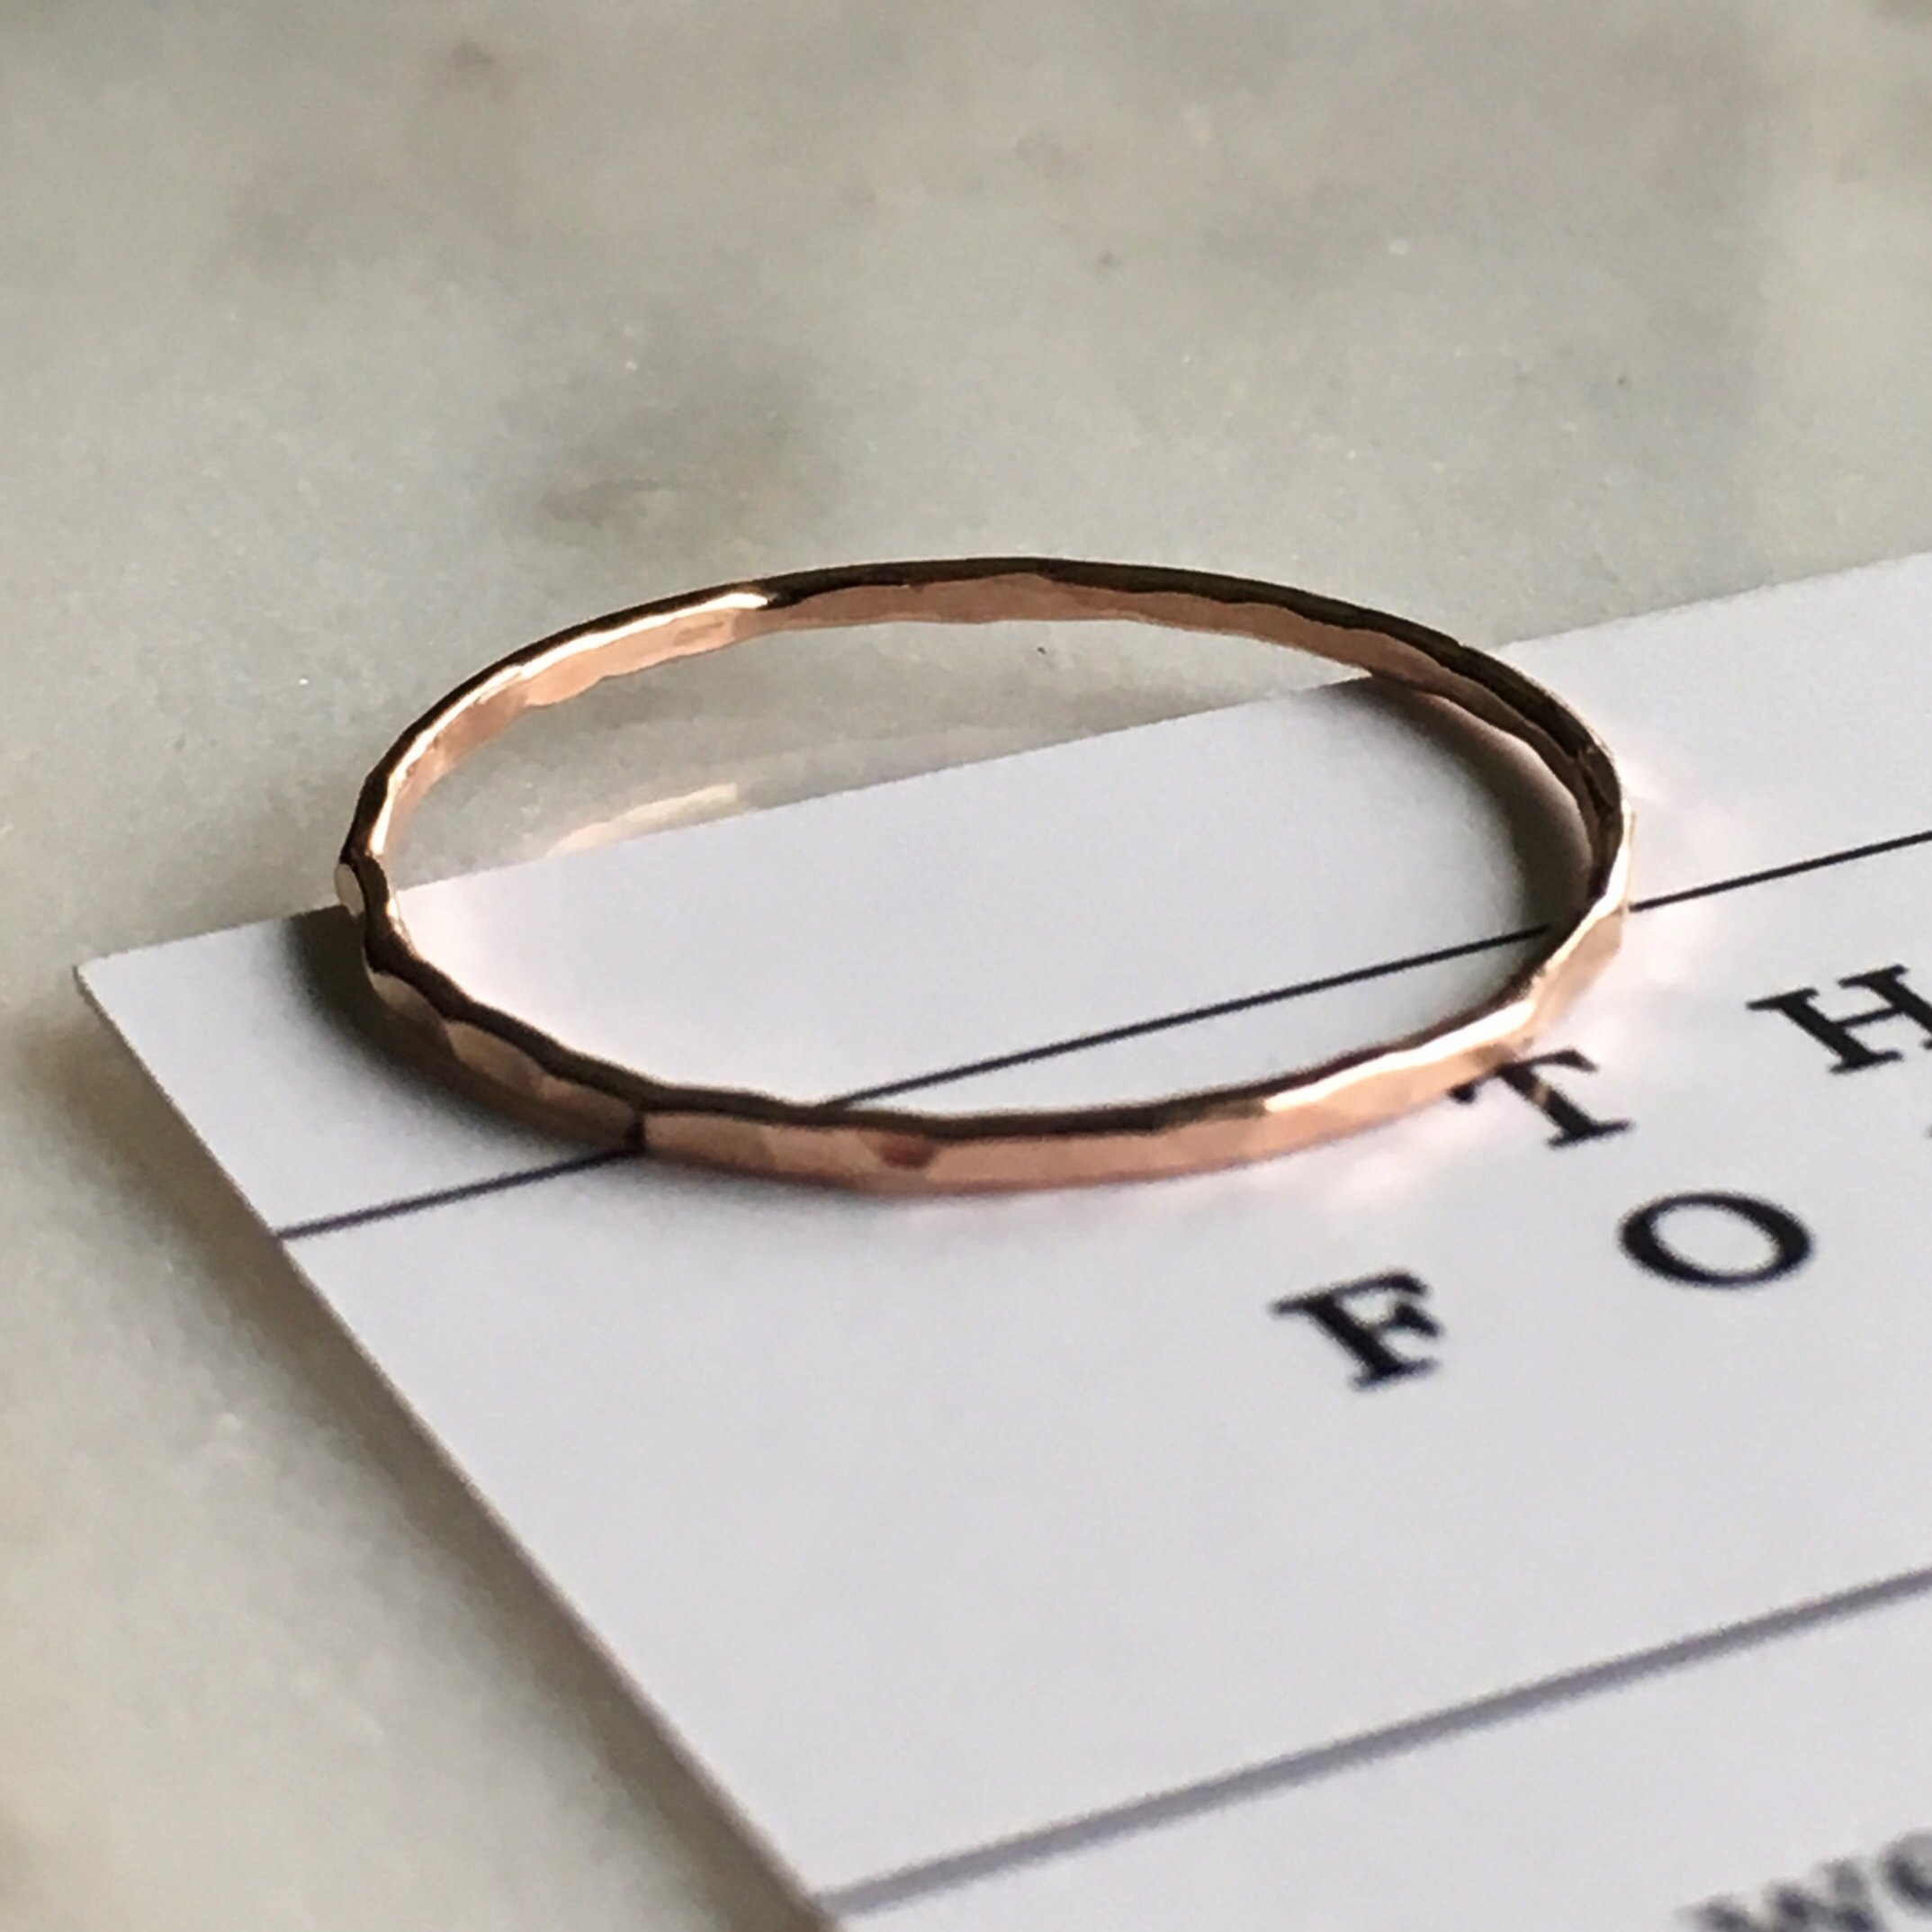 14k Rose Gold Filled, Stacking Dainty Little Plain Band, Size 6 Ring, Gift for Women